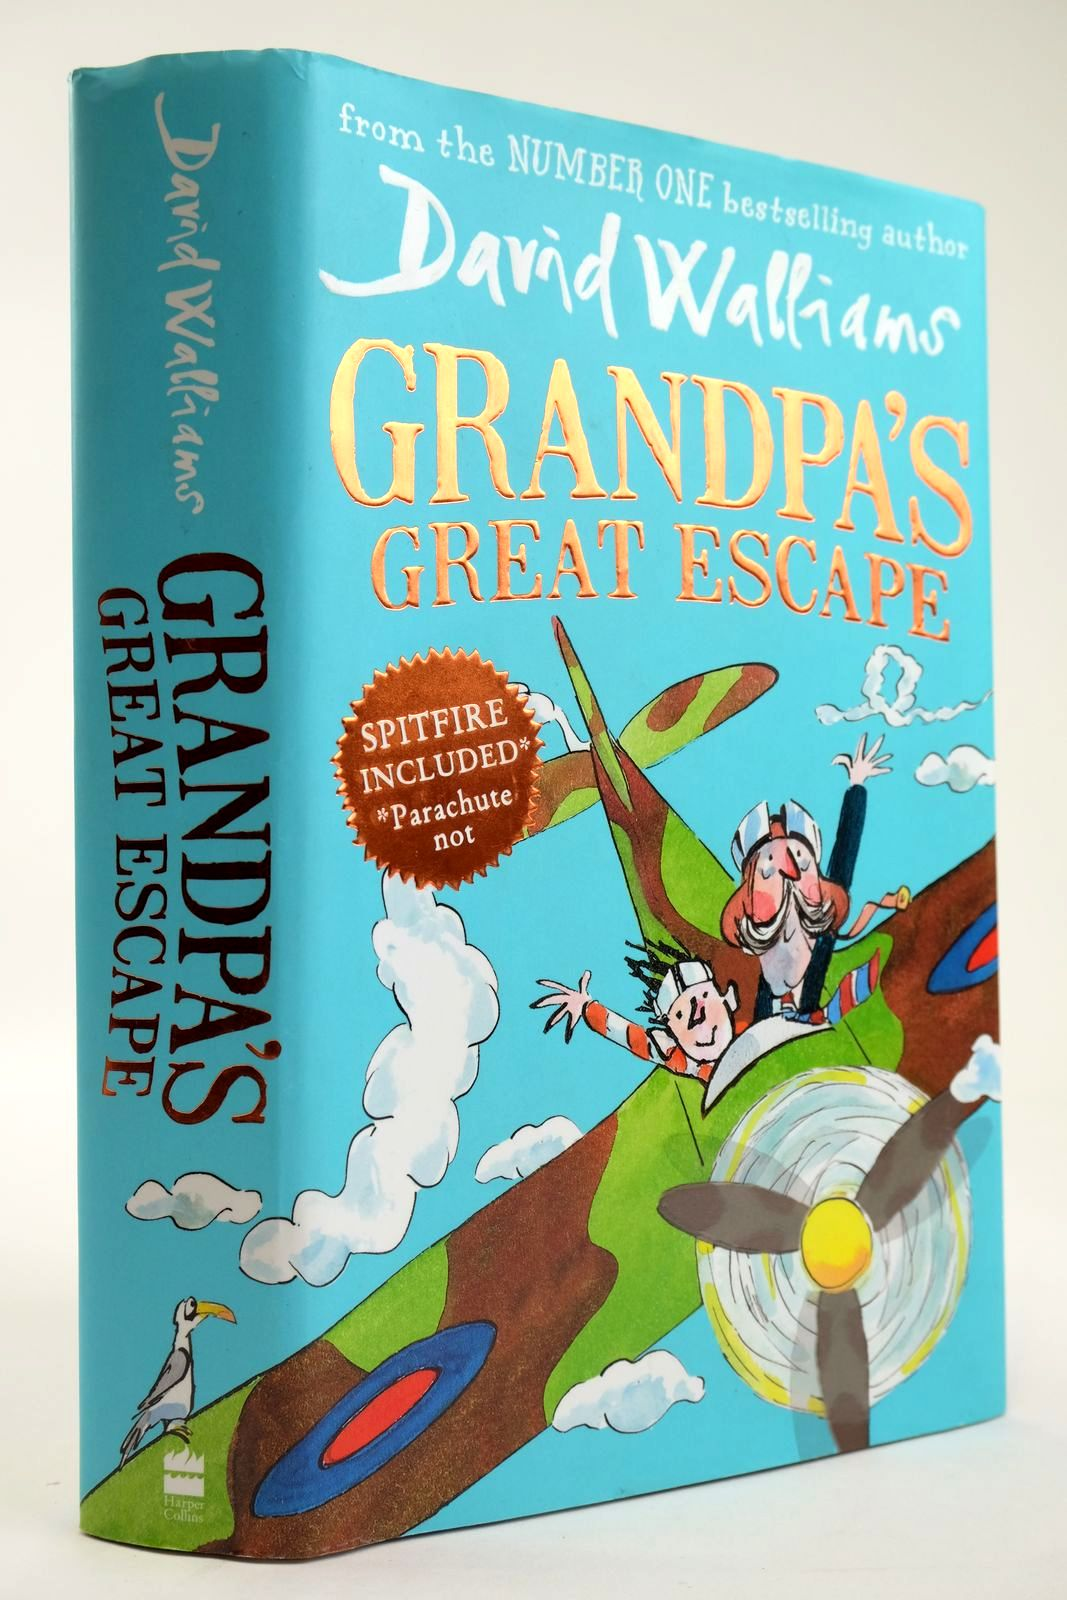 Photo of GRANDPA'S GREAT ESCAPE written by Walliams, David illustrated by Ross, Tony published by Harper Collins Childrens Books (STOCK CODE: 2133545)  for sale by Stella & Rose's Books